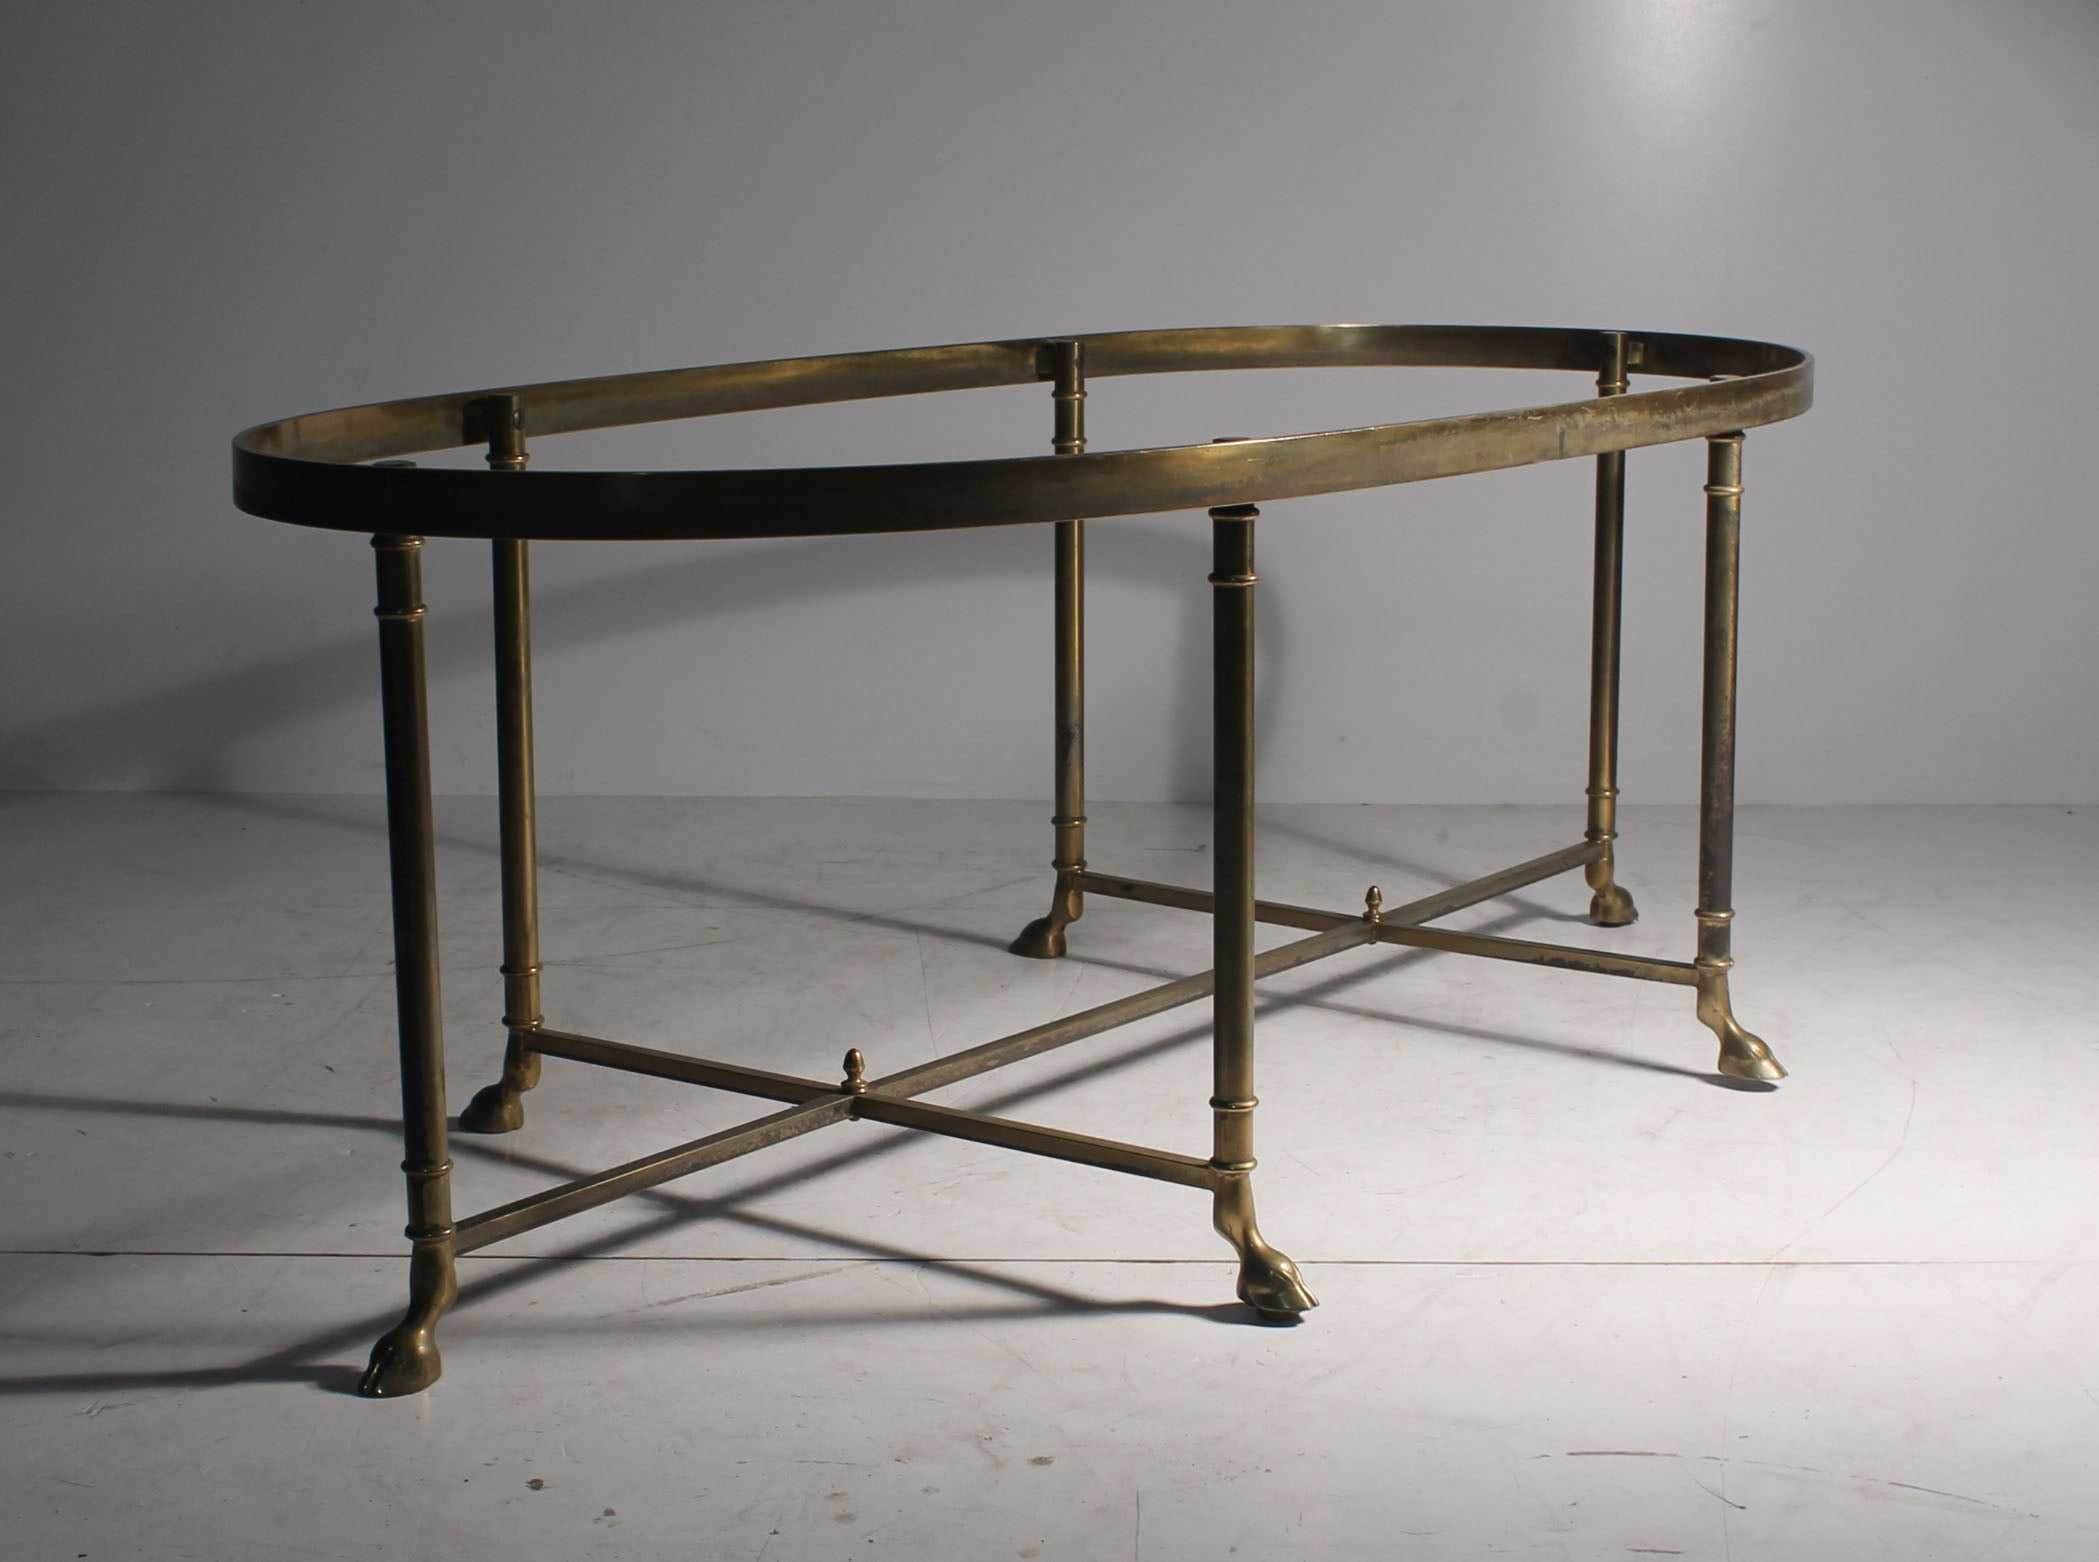 Vintage Brass Oval La Barge Hollywood Regency Six Leg Hoof Coffee Table At 1stdibs